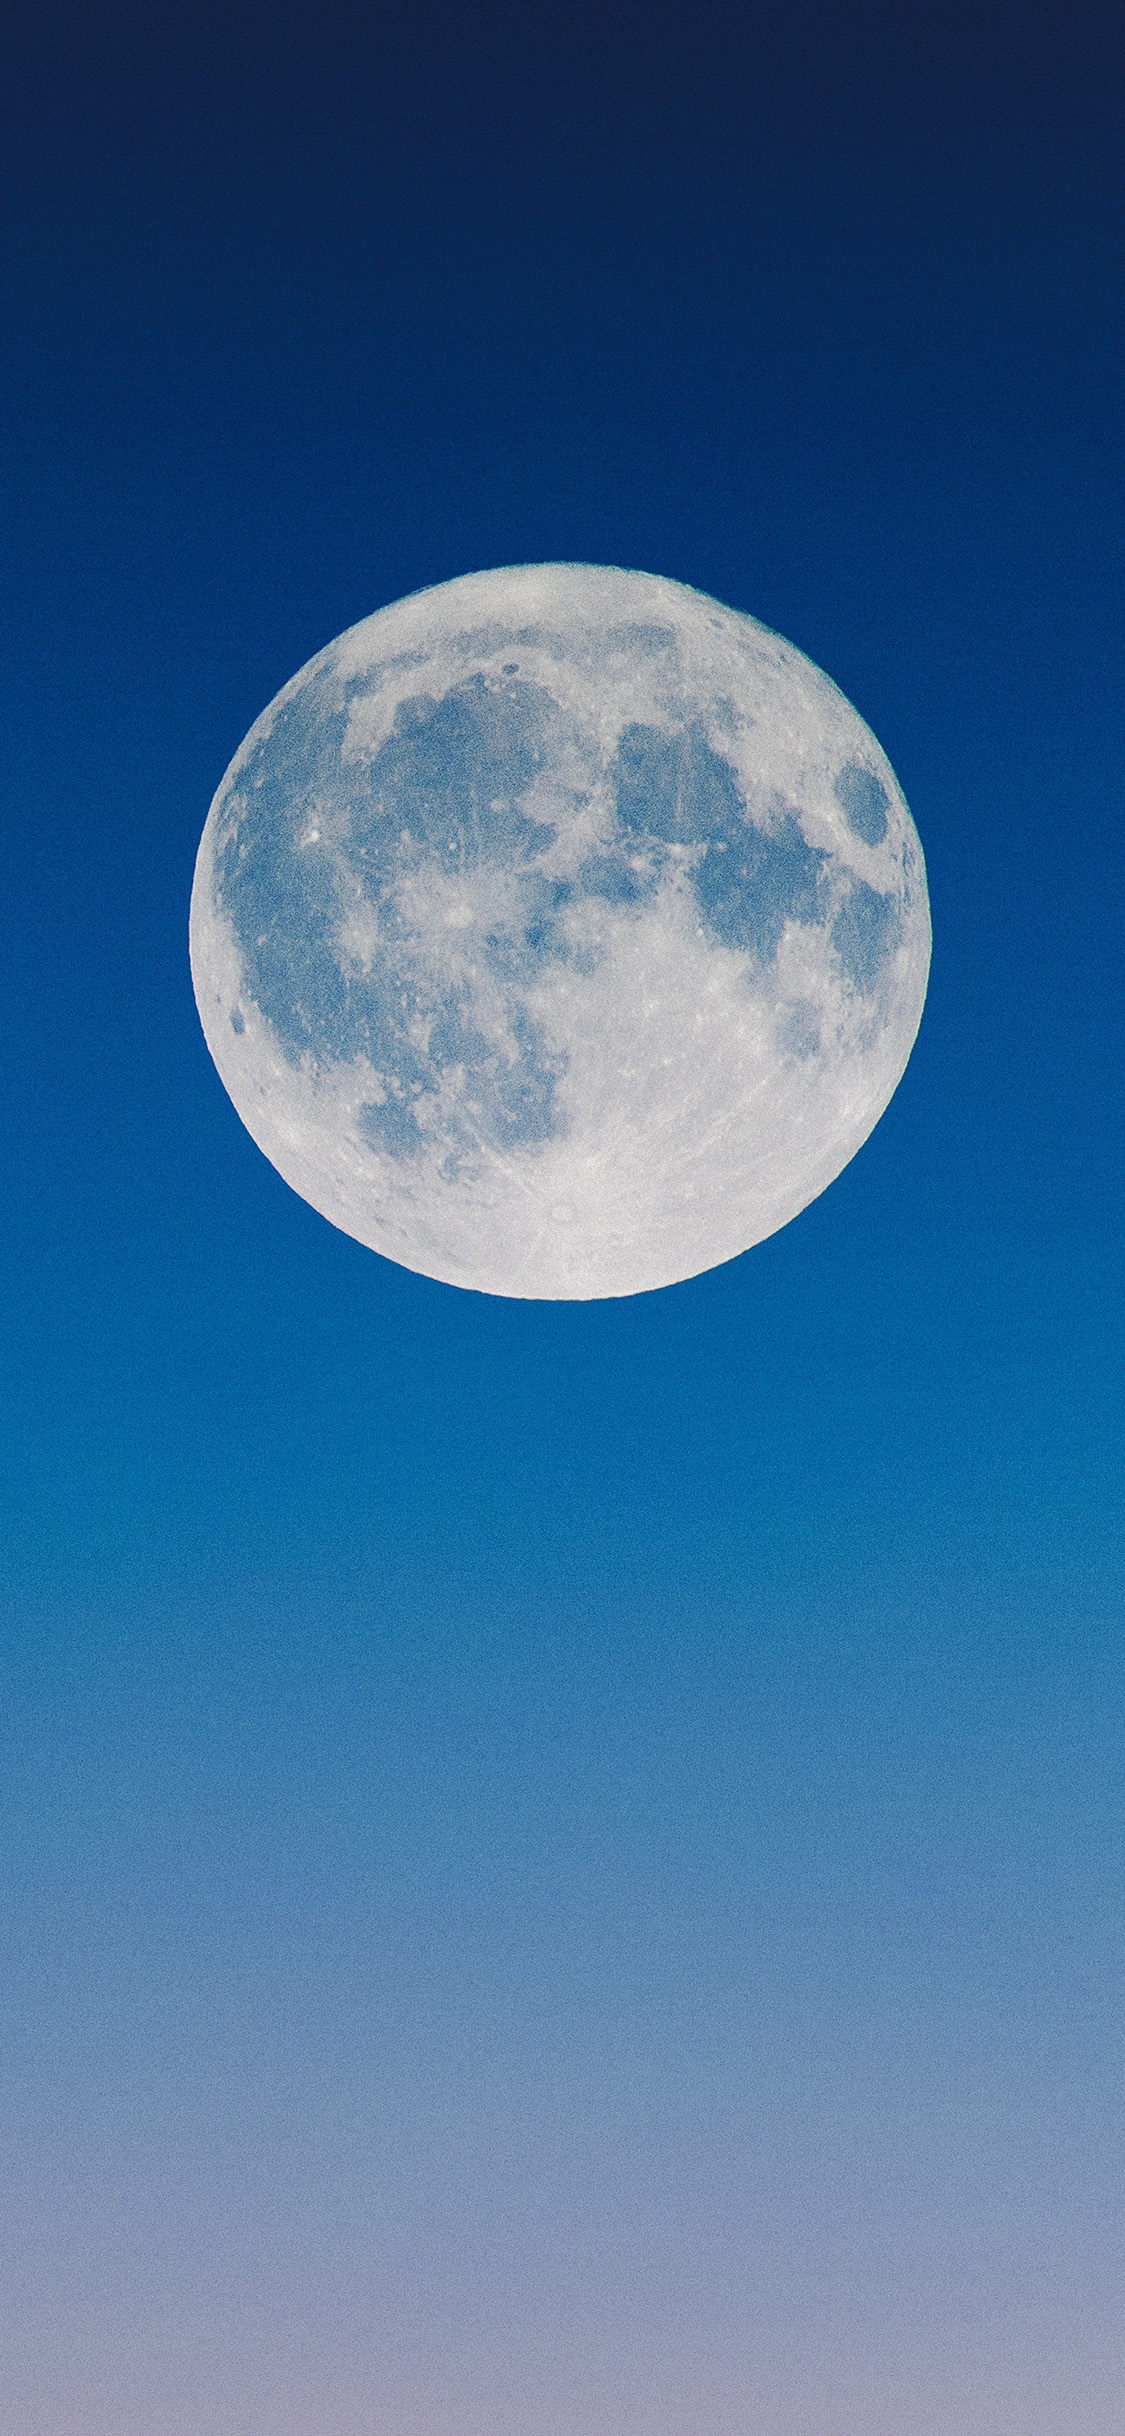 moon front center iphone wallpaper